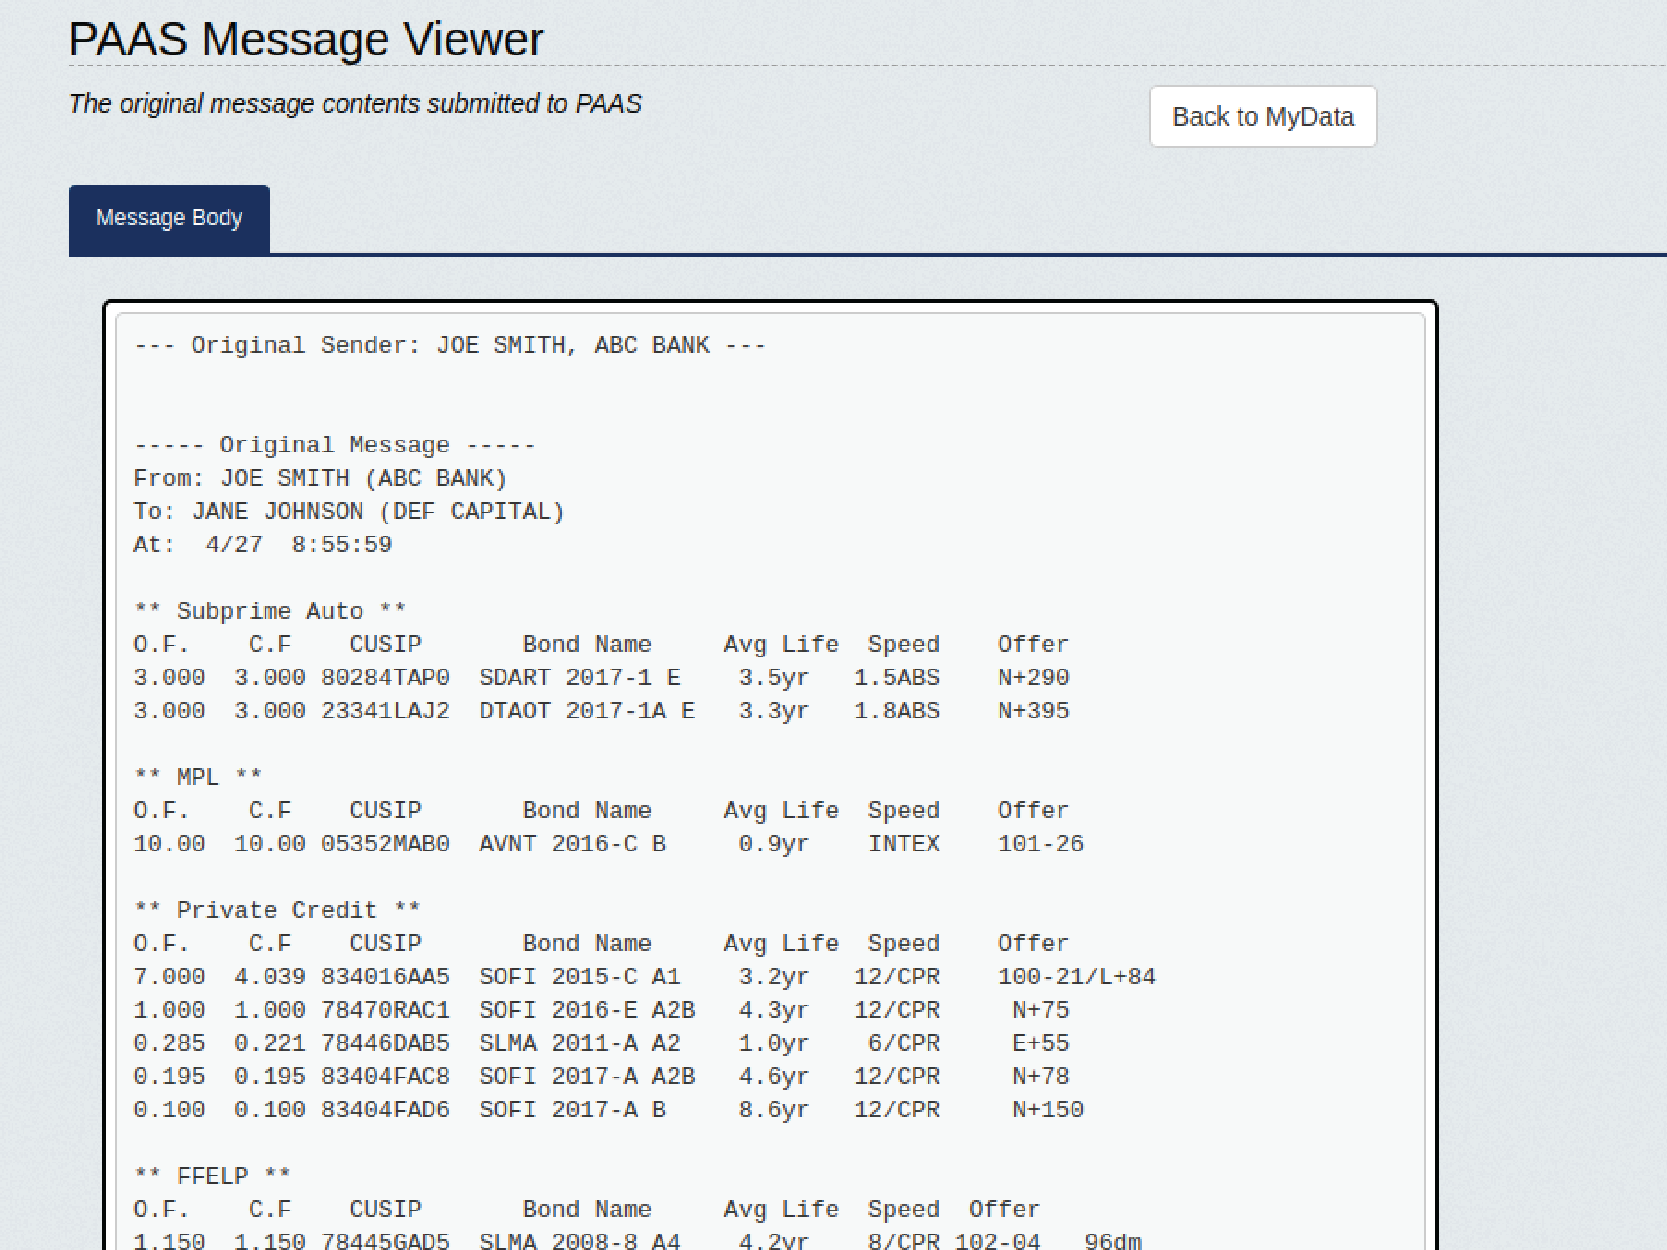 PAAS Message Viewer